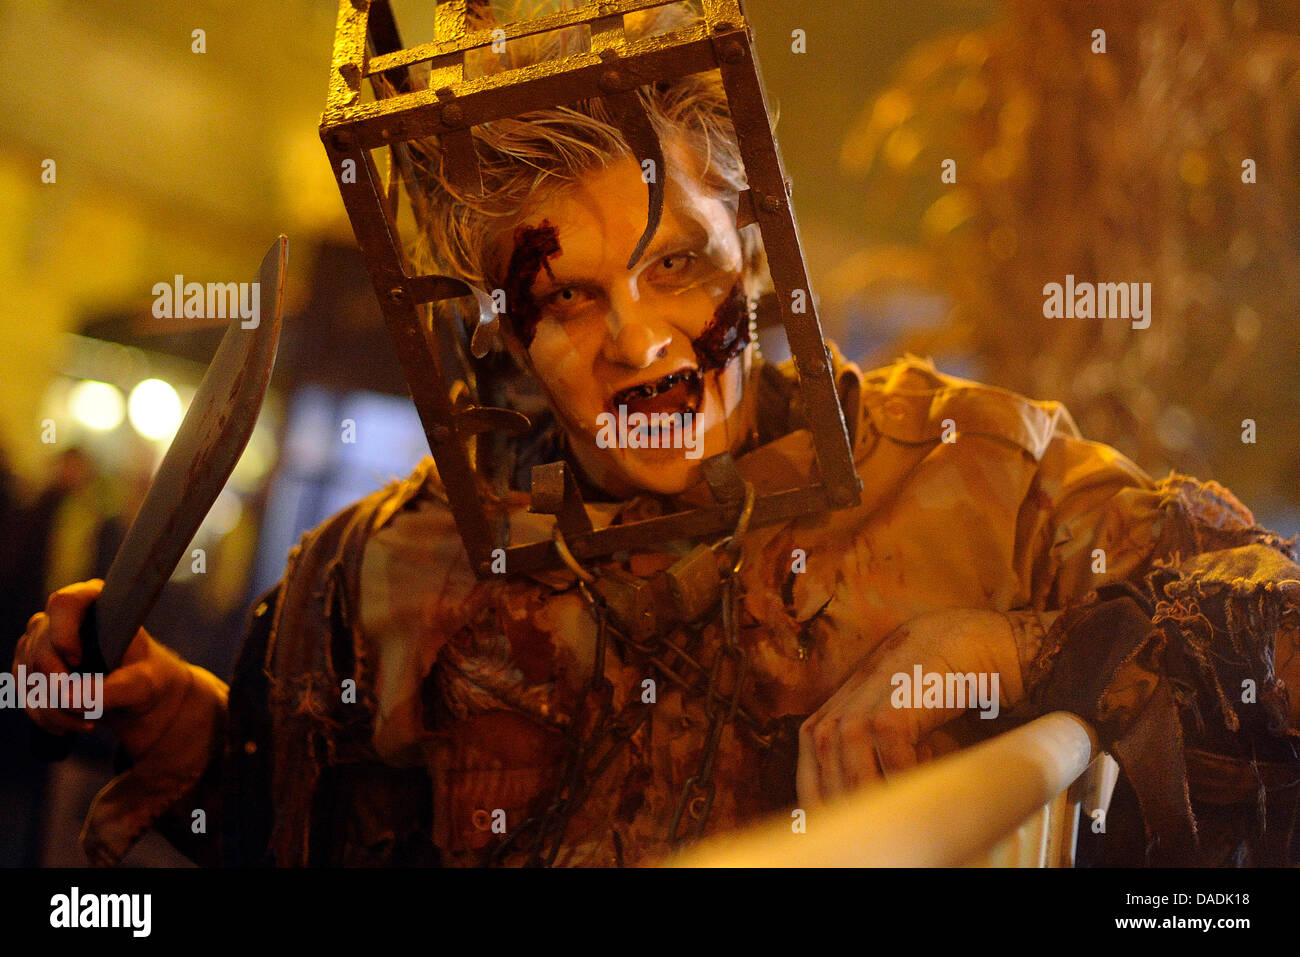 A performer costumed as monster scares visitors of the MoviePark in Bottrop, Germany, 27 October 2011. With Christmas - Stock Image